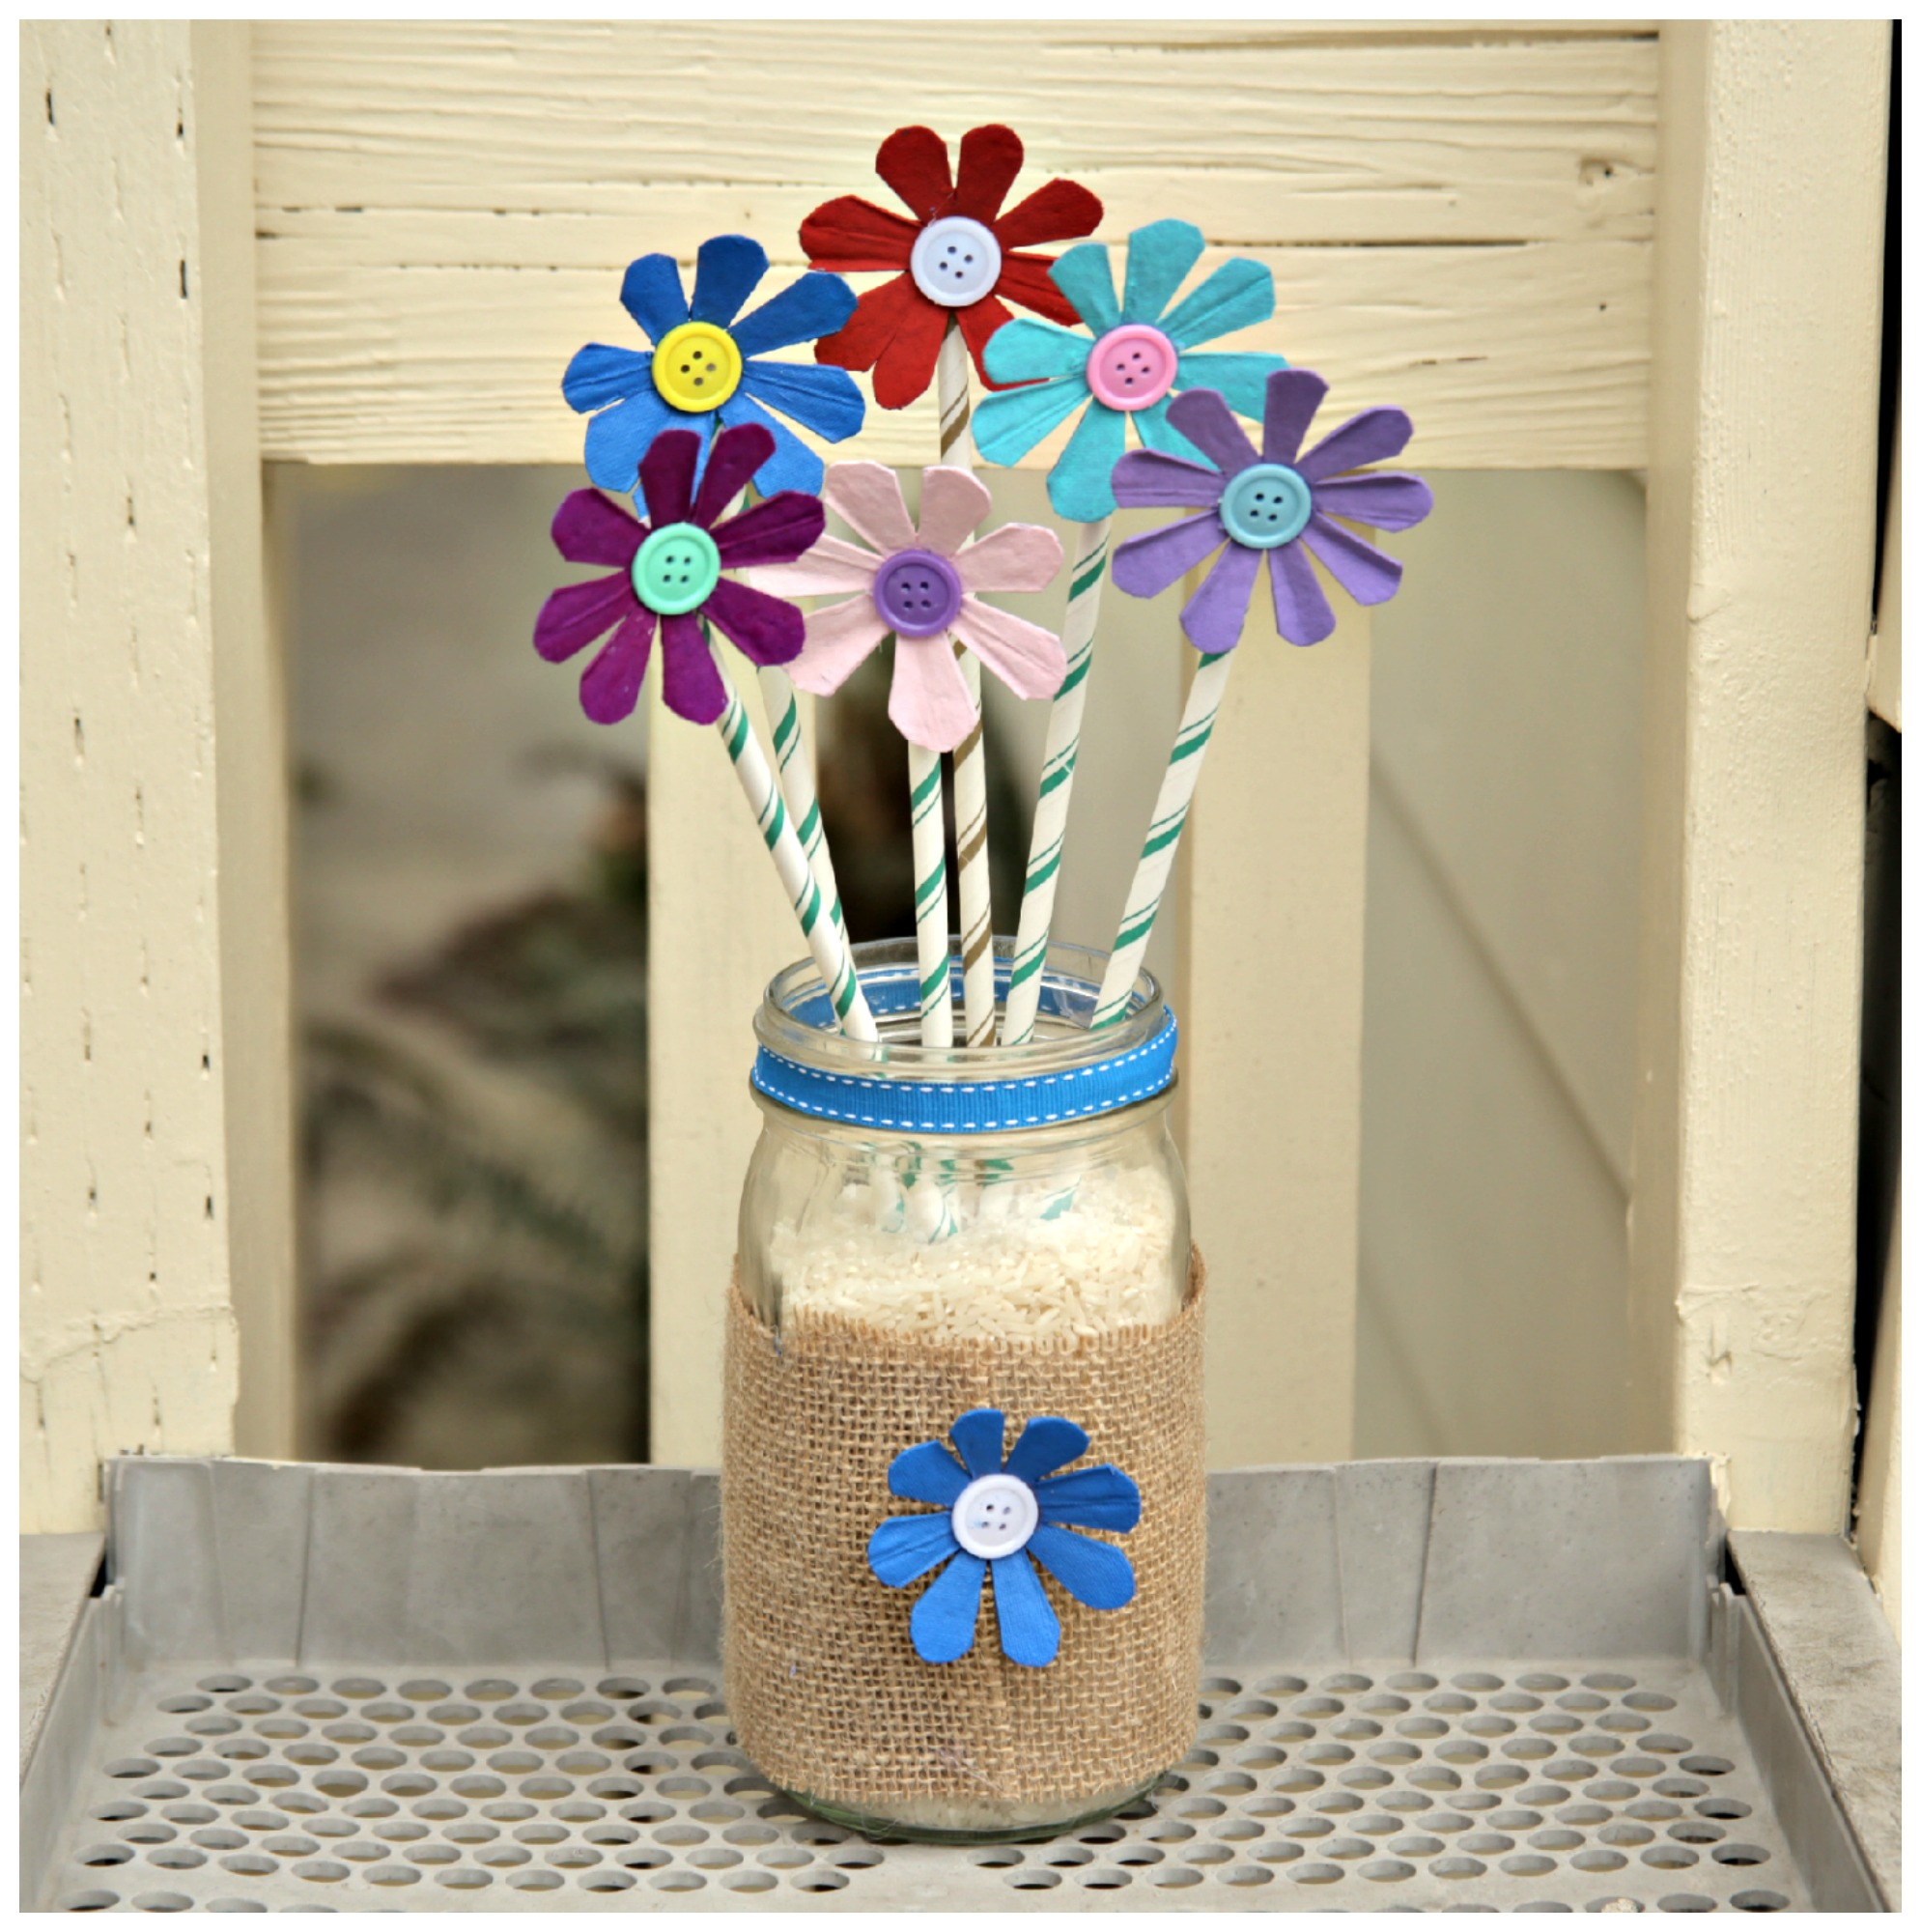 6 earth day crafts from recycled materials kix cereal for Creative products from waste materials